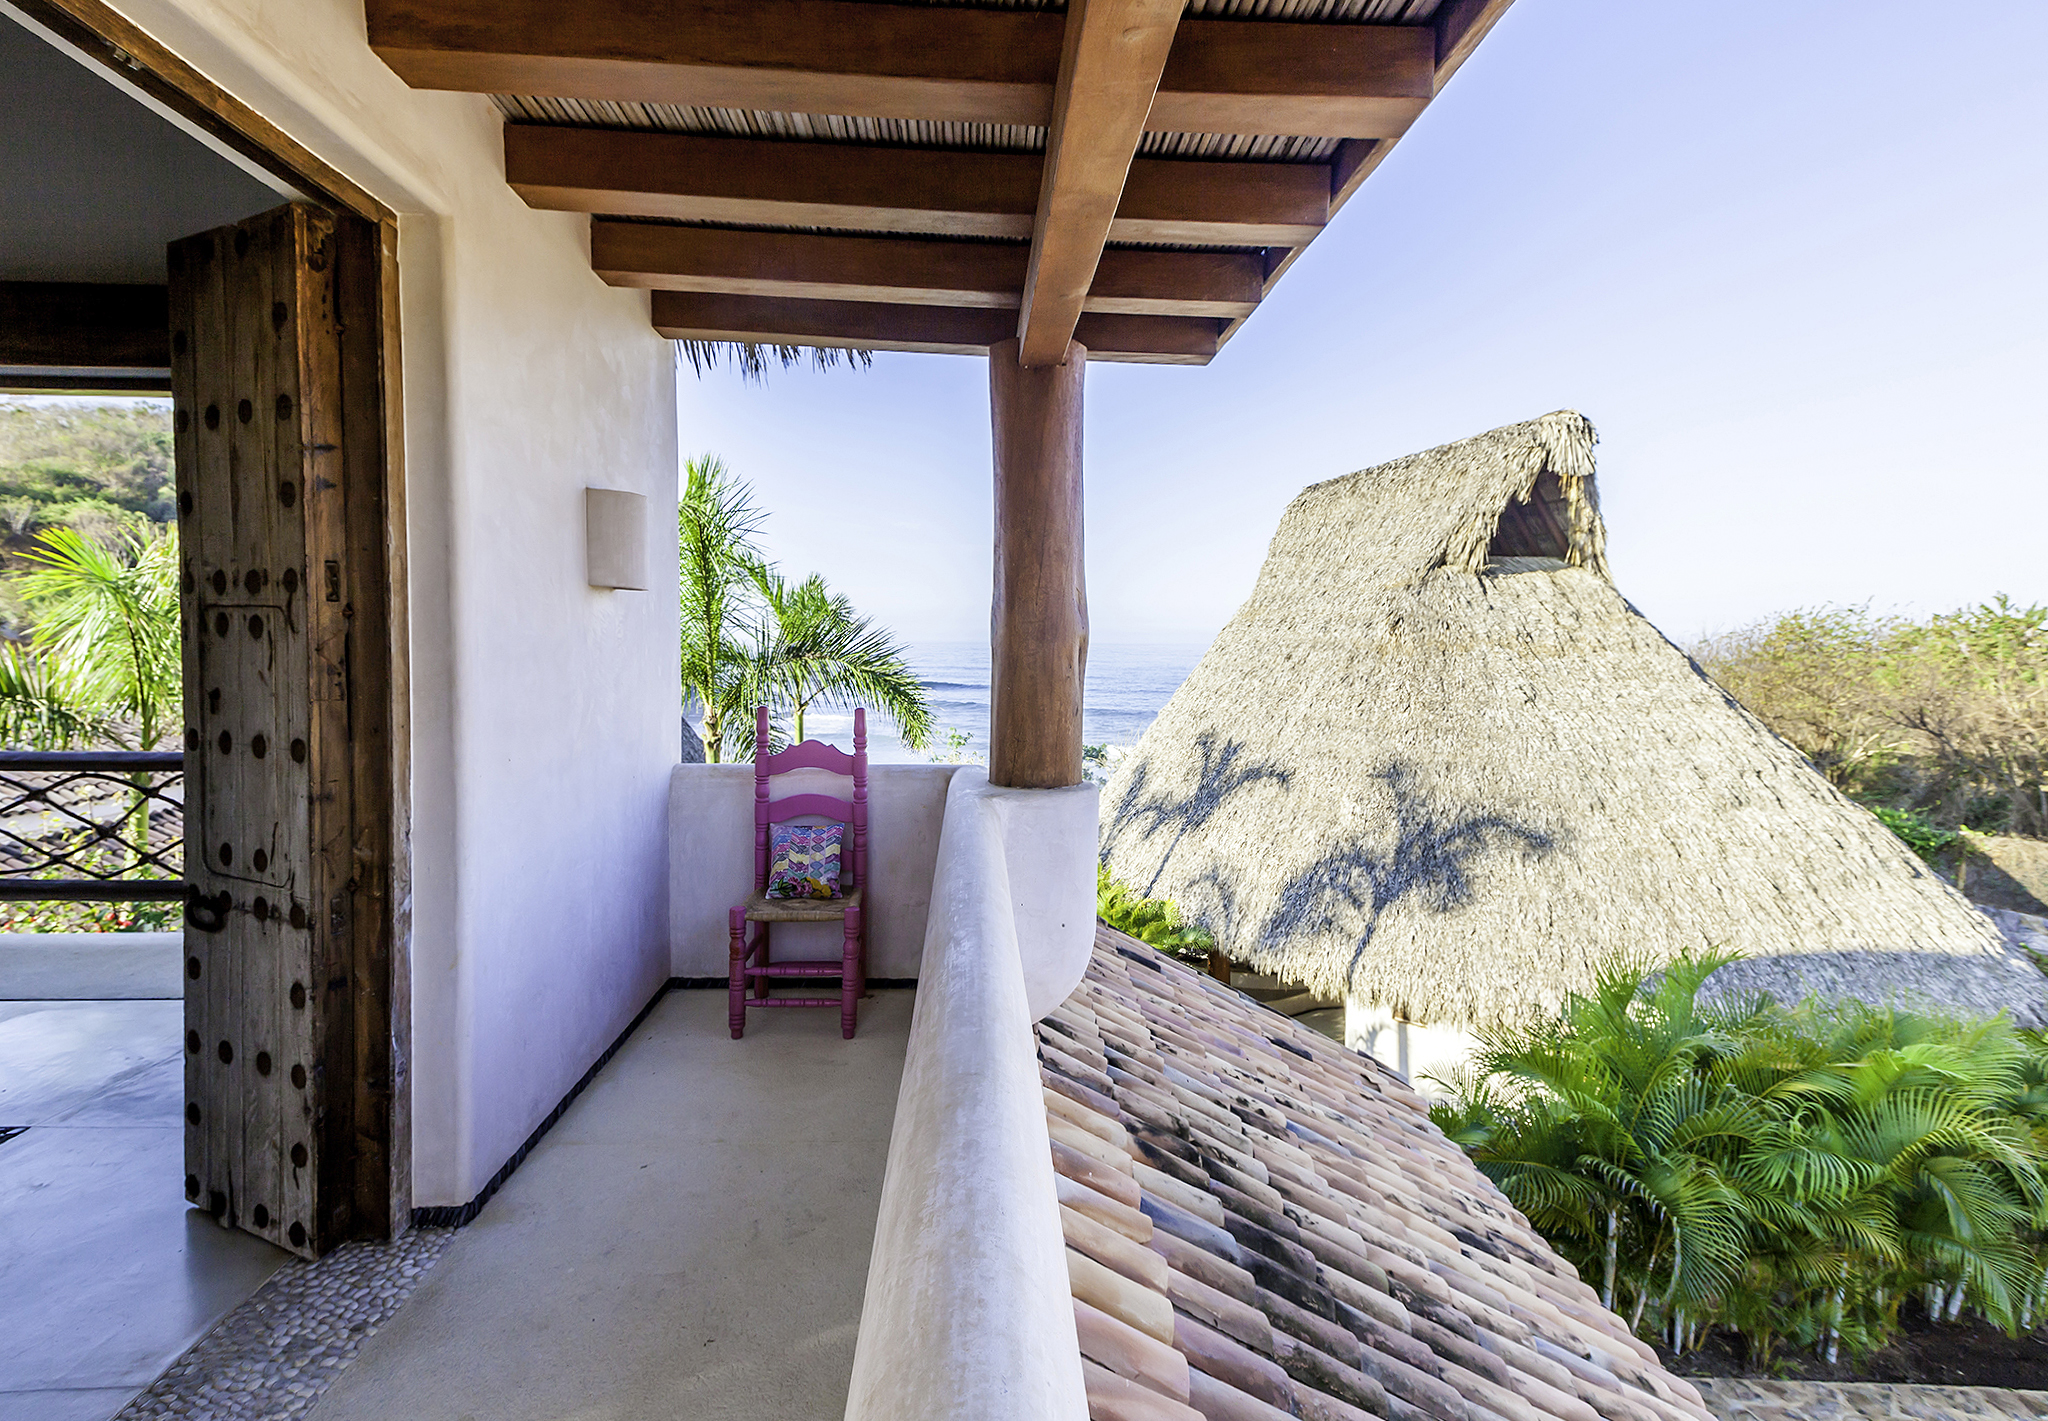 Balcony suite luxury mexico rental casa en las rocas for Balcony overlooking ocean